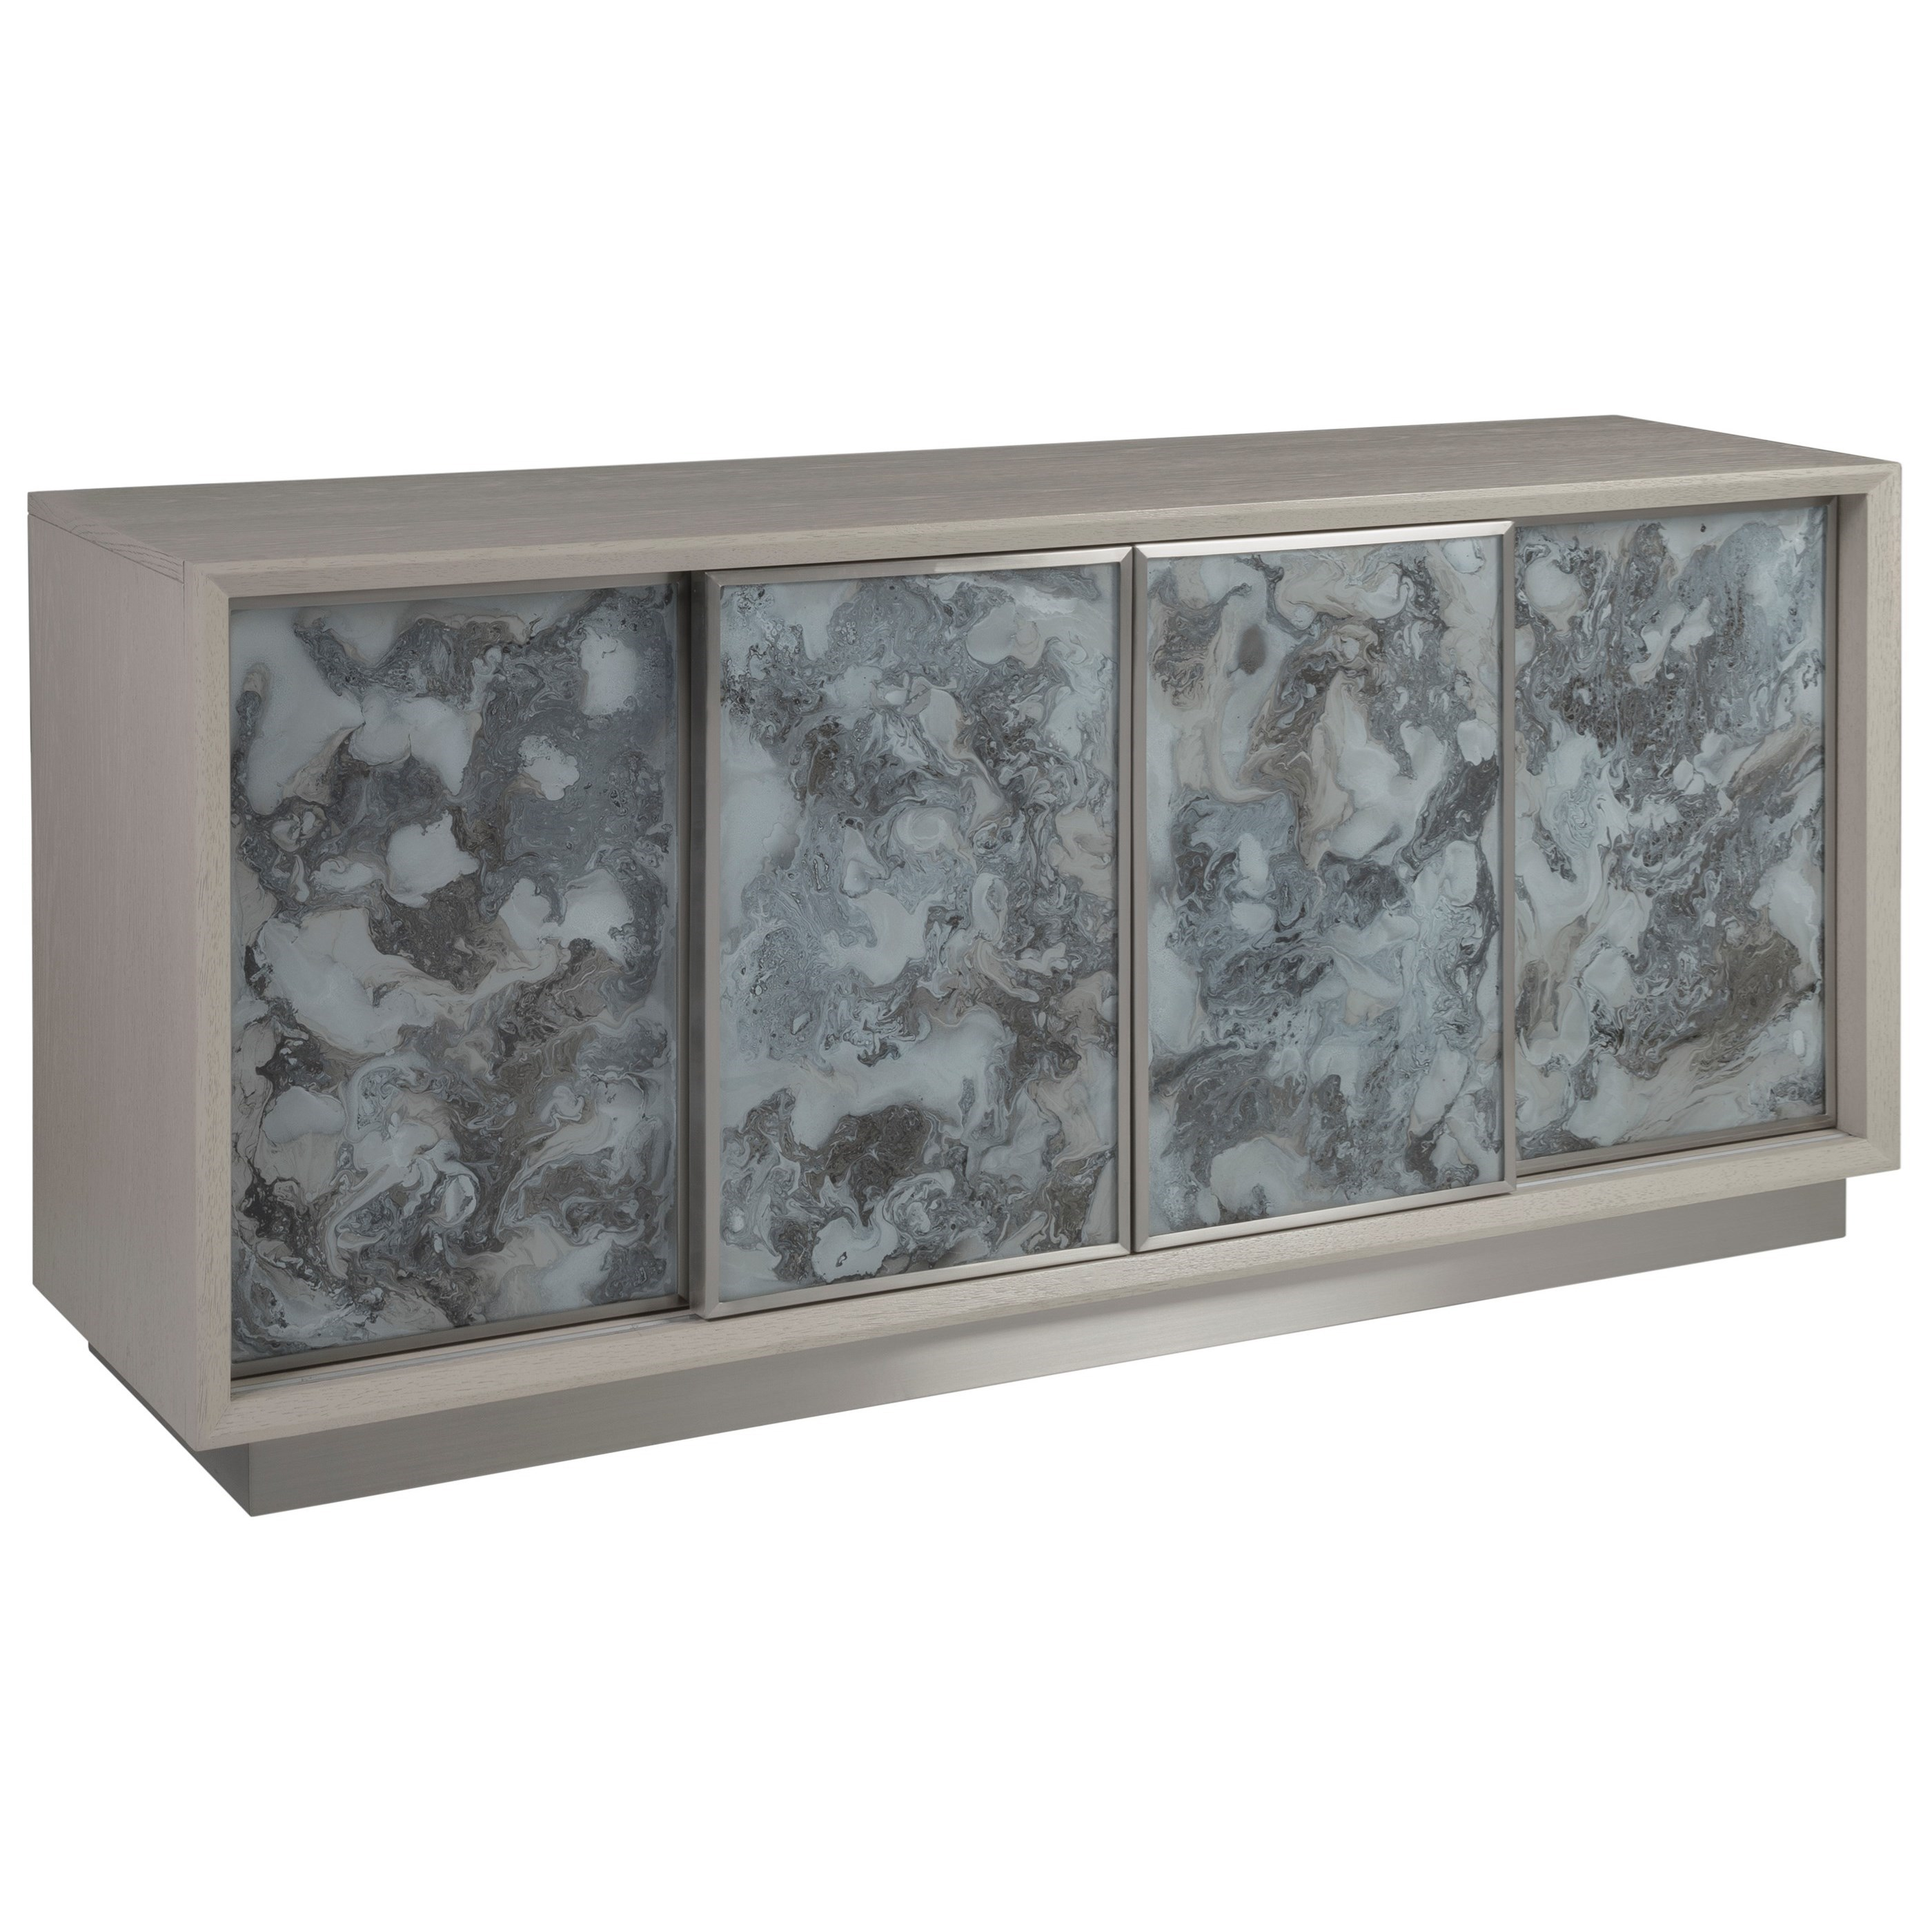 Metaphor Media Console by Artistica at Baer's Furniture